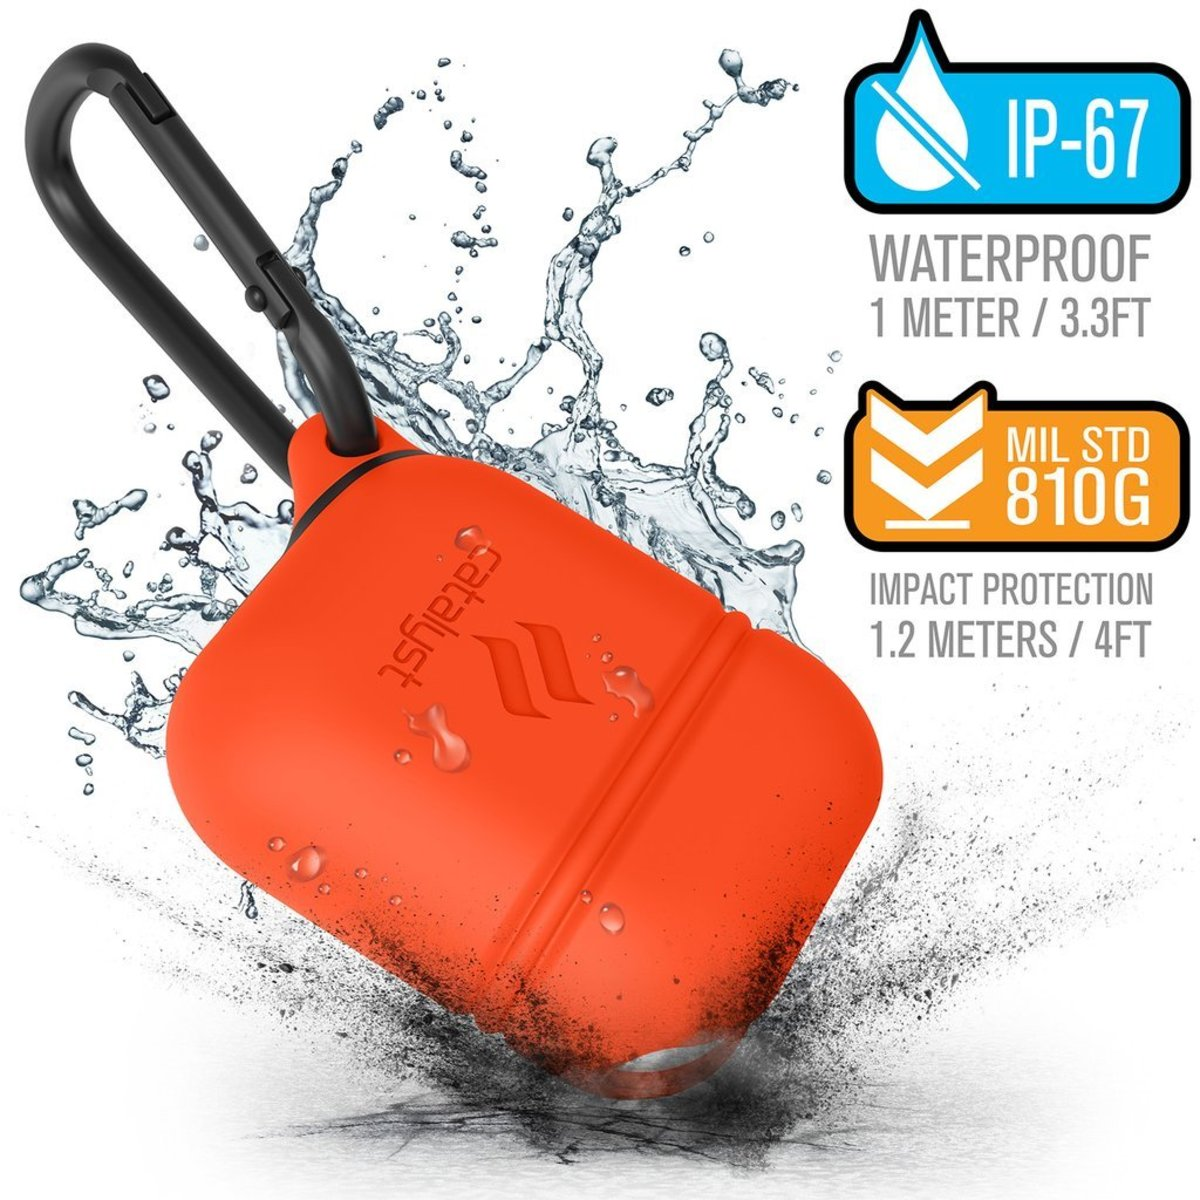 Waterproof Case for AirPods - Sunset